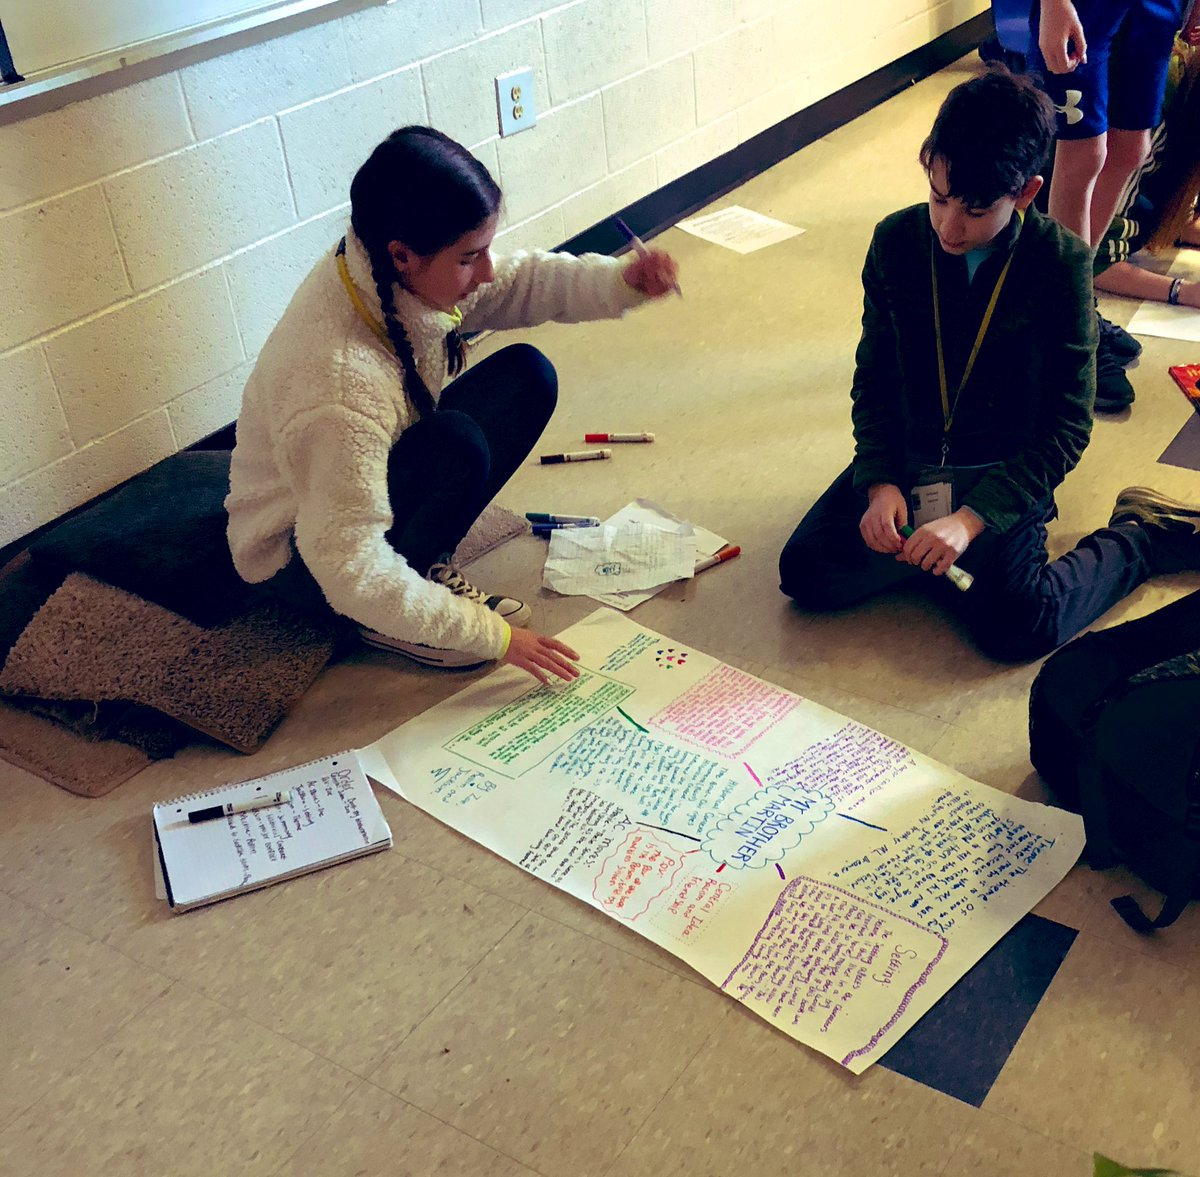 Ss used historical fiction children's books to examine how historical context & conflict shapes a character, make text:text connections w/ their book club novels,etc. Then worked w/  partners to display and present it all! #2ndaryela #readingworkshop #picturebooksformiddleschool